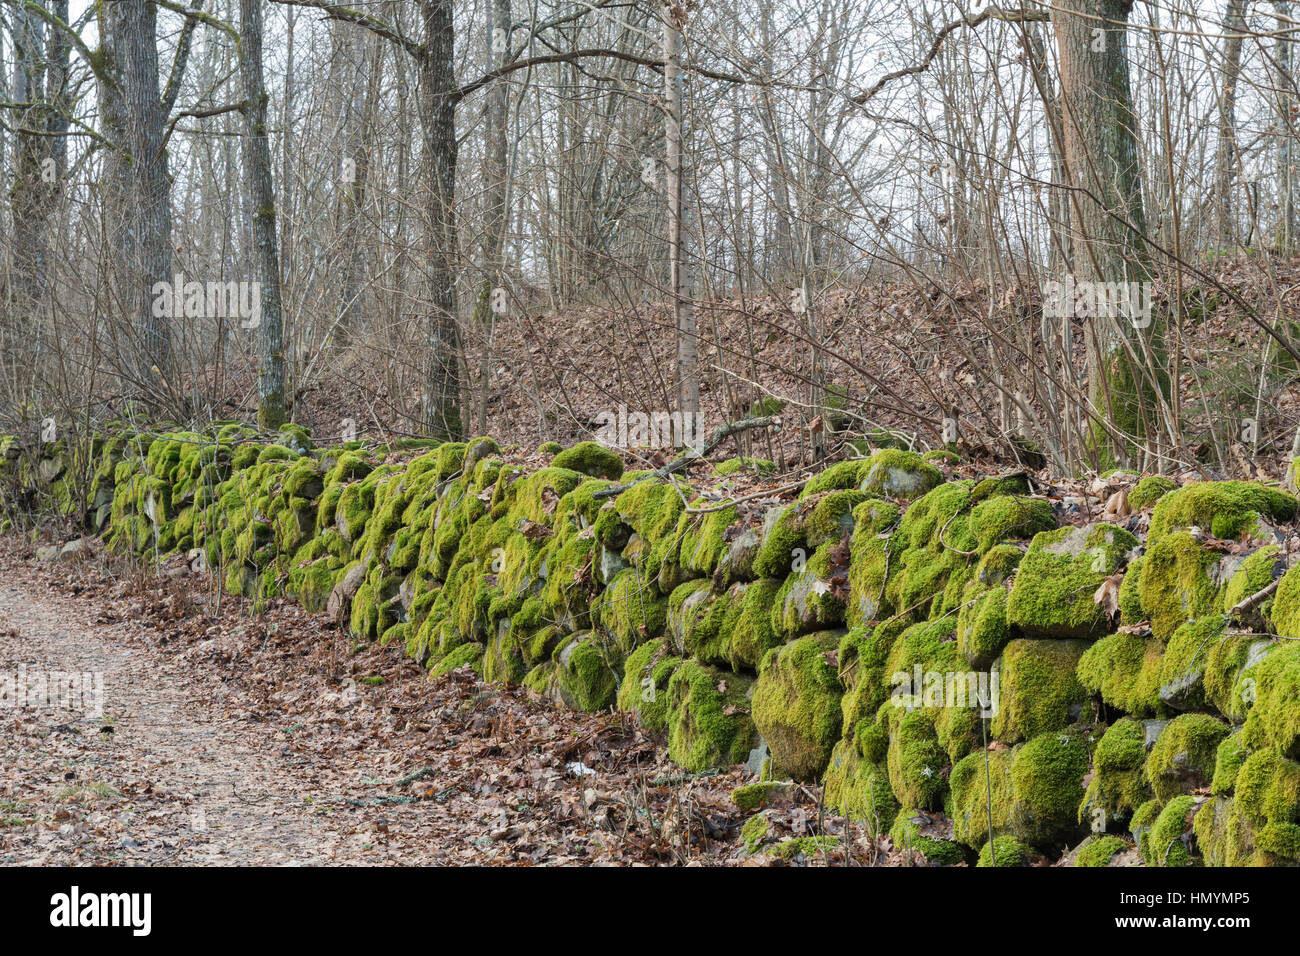 Moss-grown stone wall fence in a deciduous forest at fall season - Stock Image